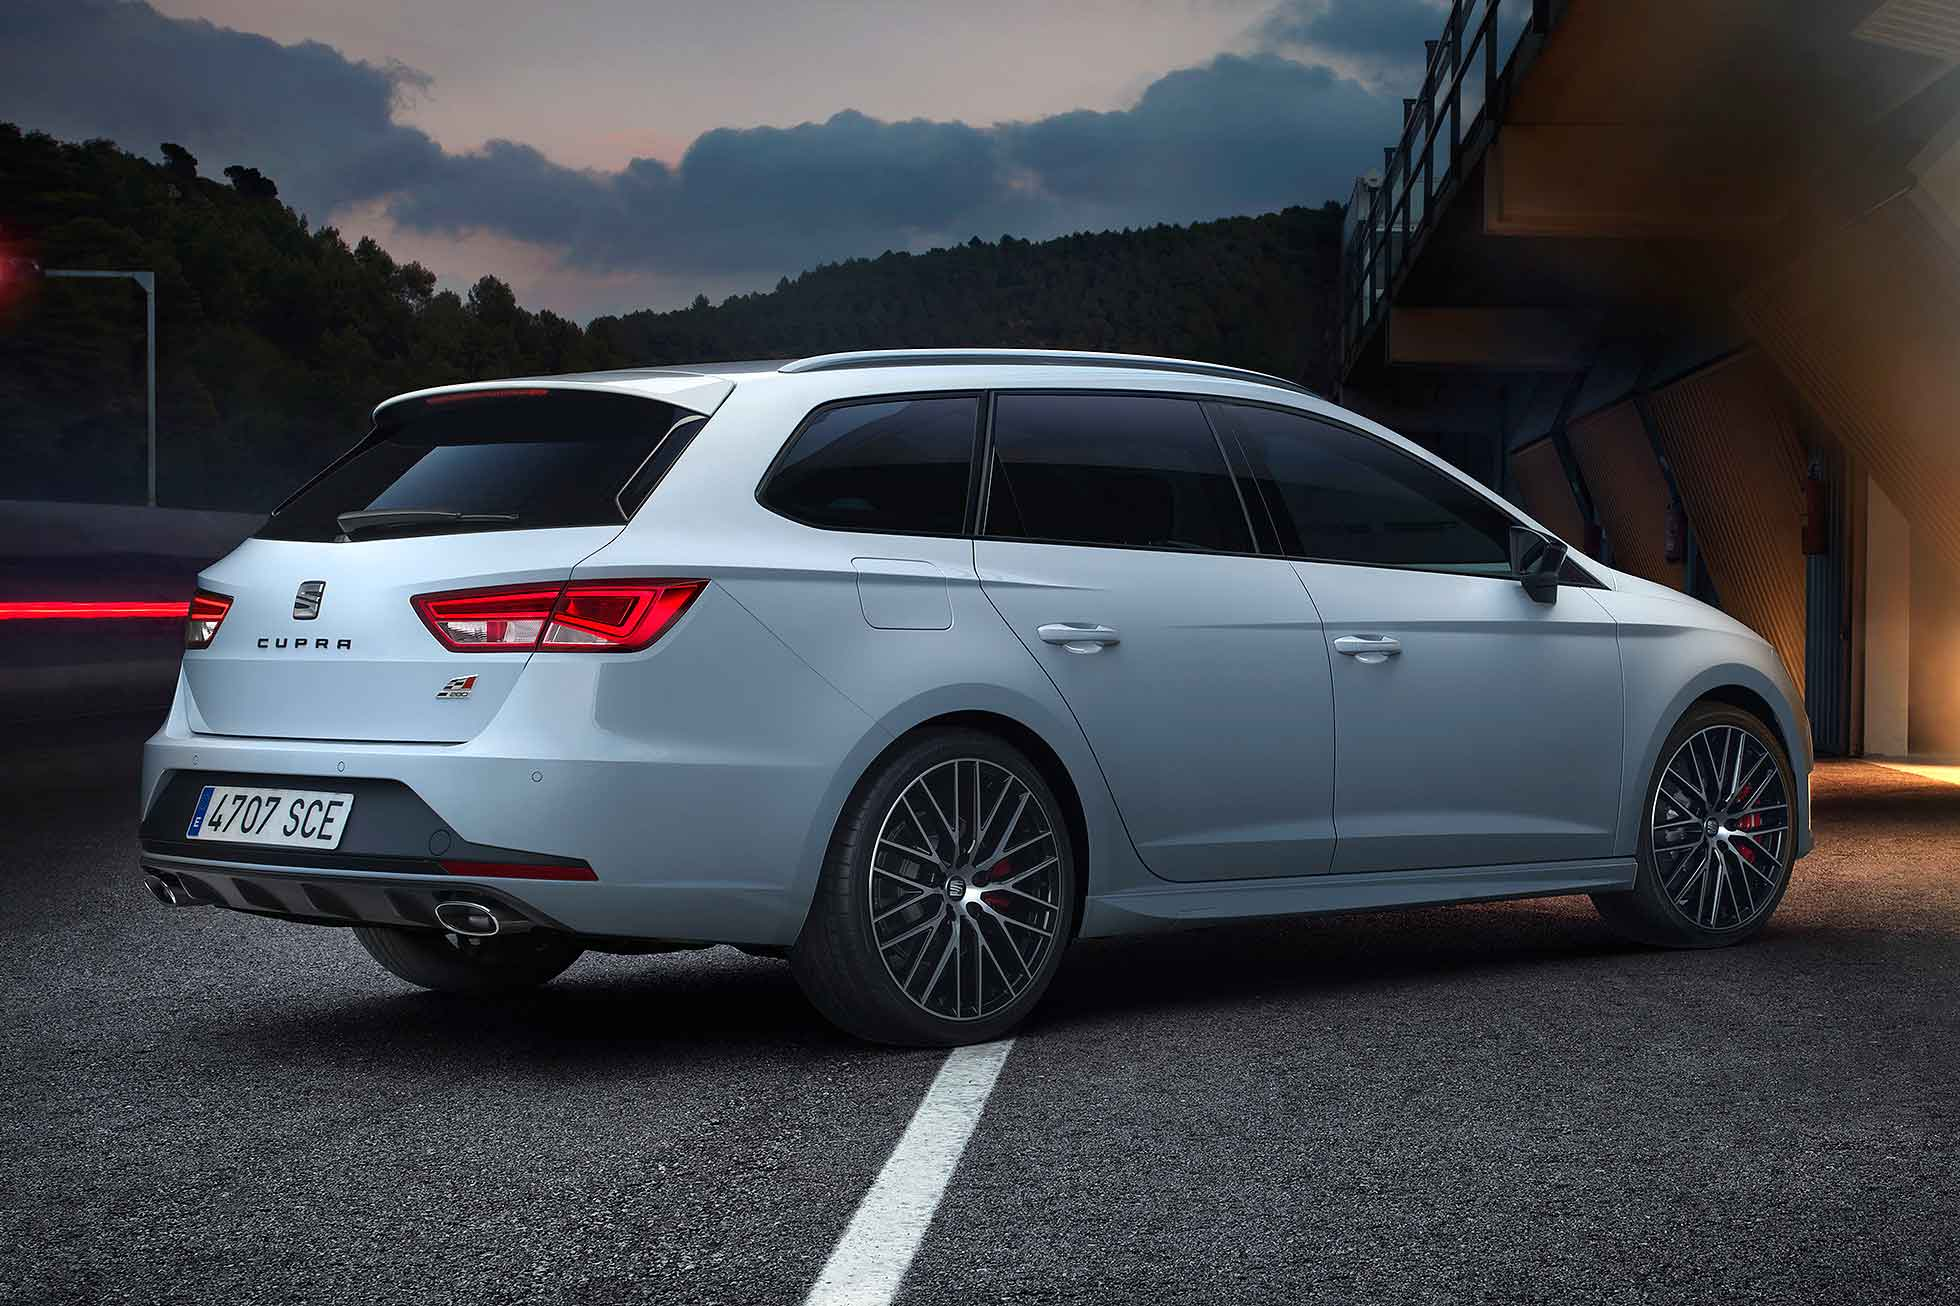 seat leon st cupra 280 hot estate revealed motoring research. Black Bedroom Furniture Sets. Home Design Ideas